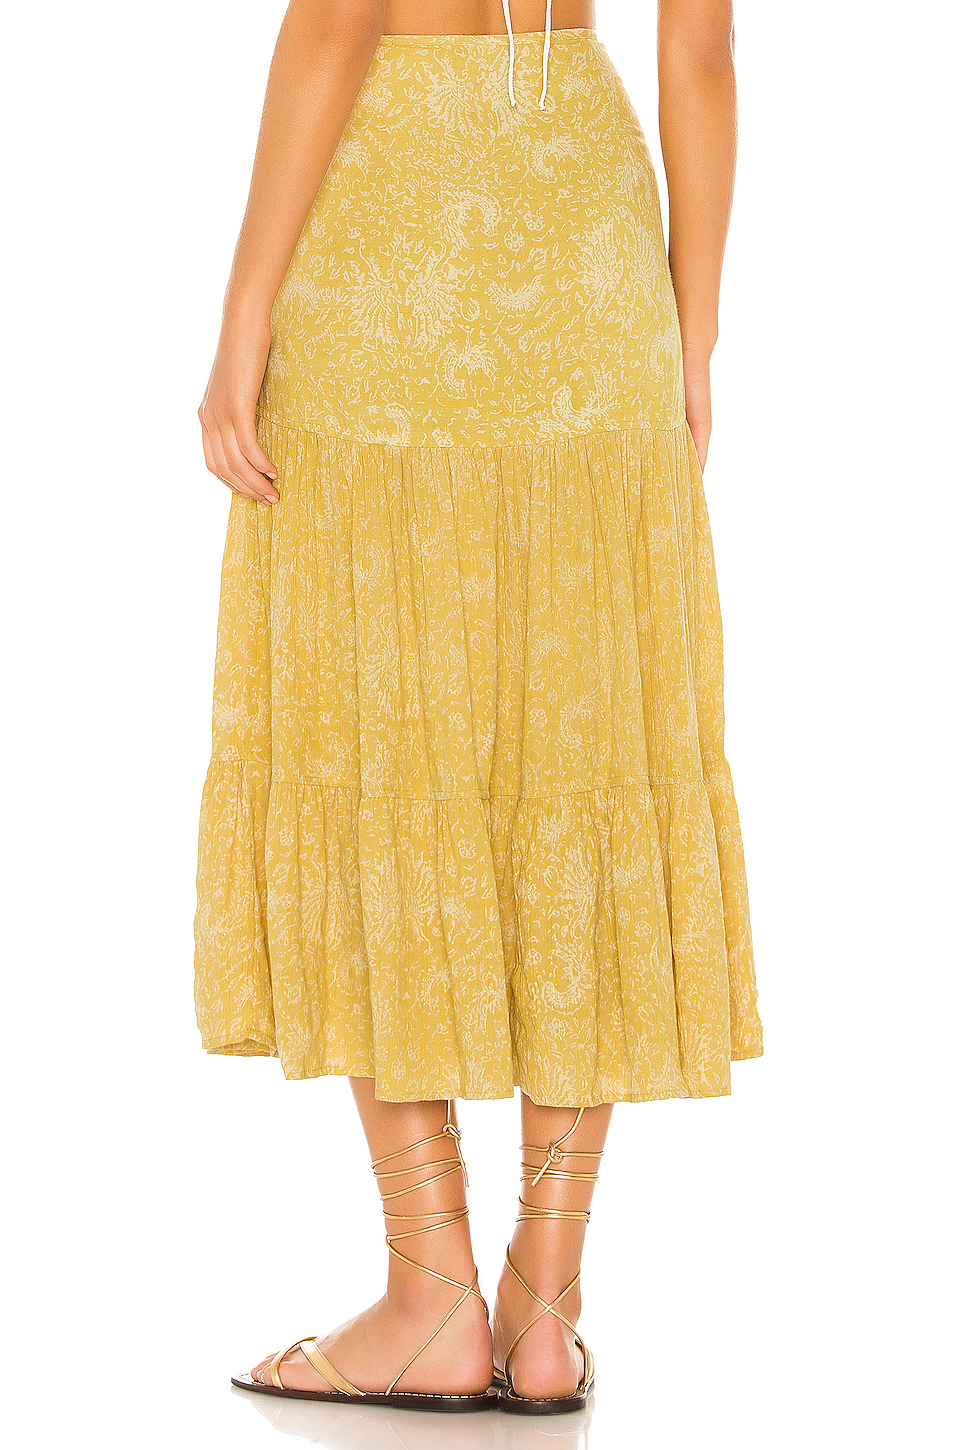 Indah Bolare Printed Modern Cowgirl Tiered Midi Skirt